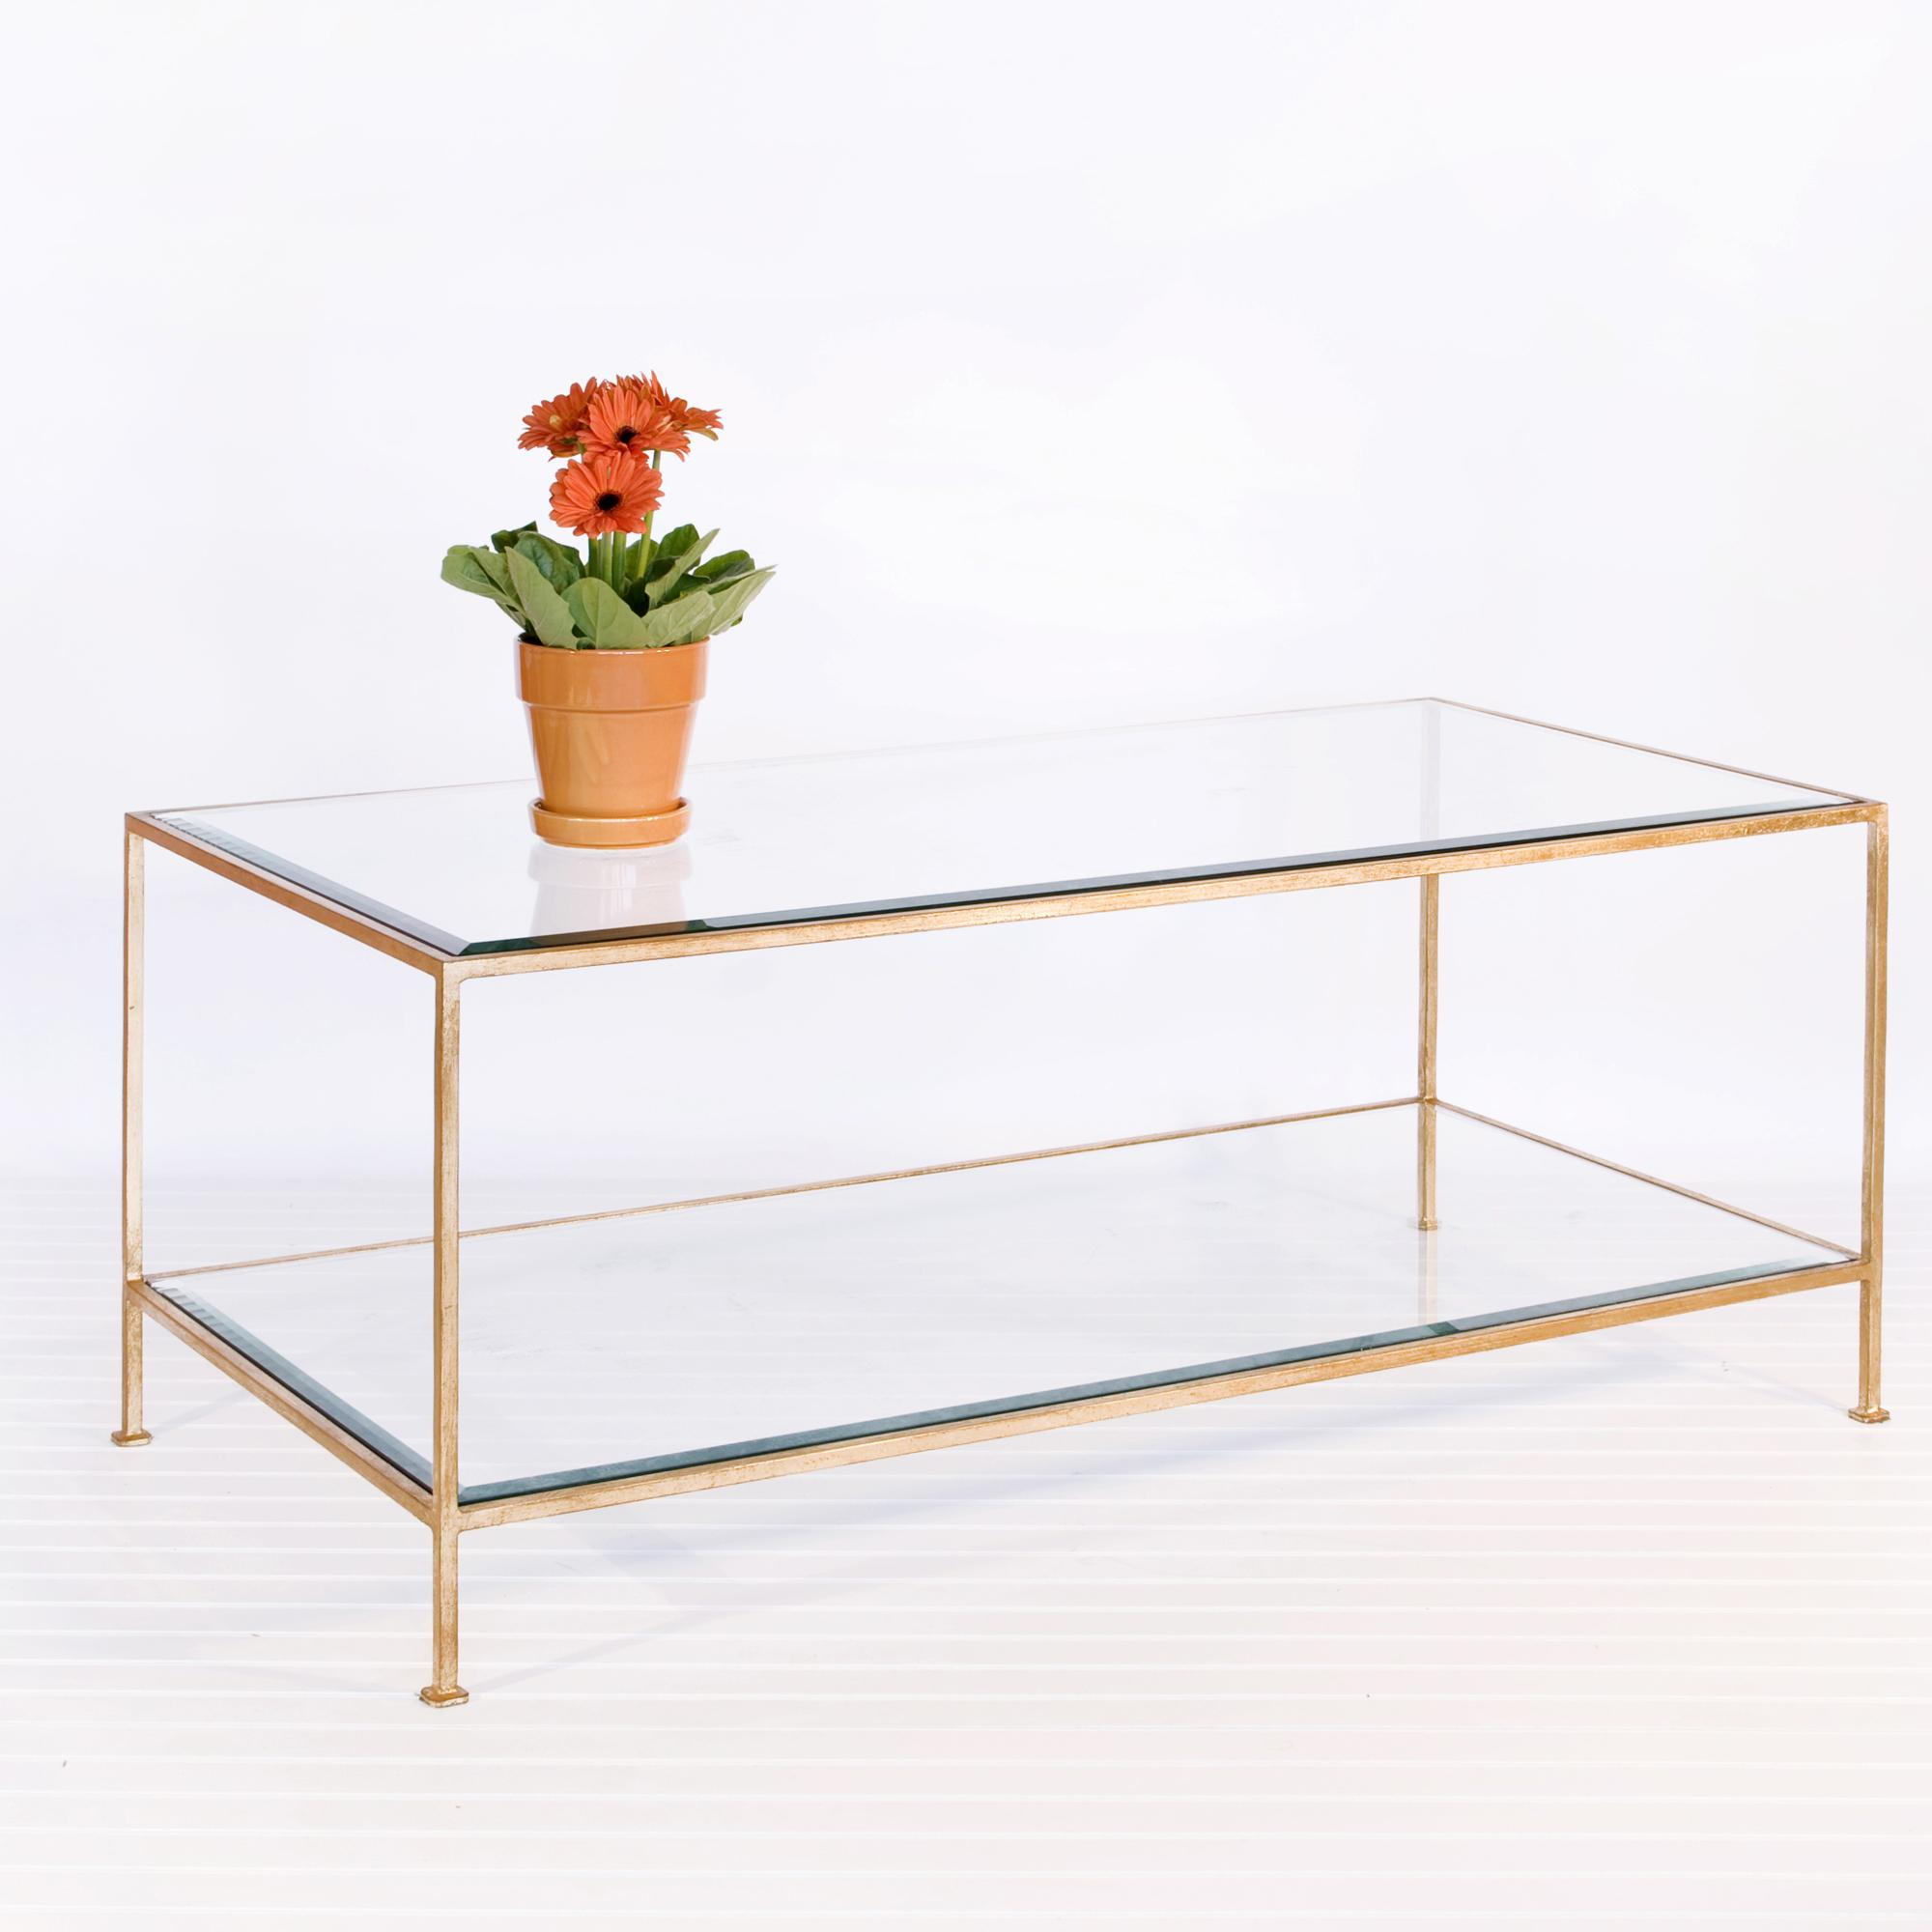 Modern-Contemporary-Coffee-Table-keep-your-things-organized-and-the-table-top-clear-the-perfect-size-to-fit-with-one-of-our-Younger-sectional-sofas (Image 5 of 10)